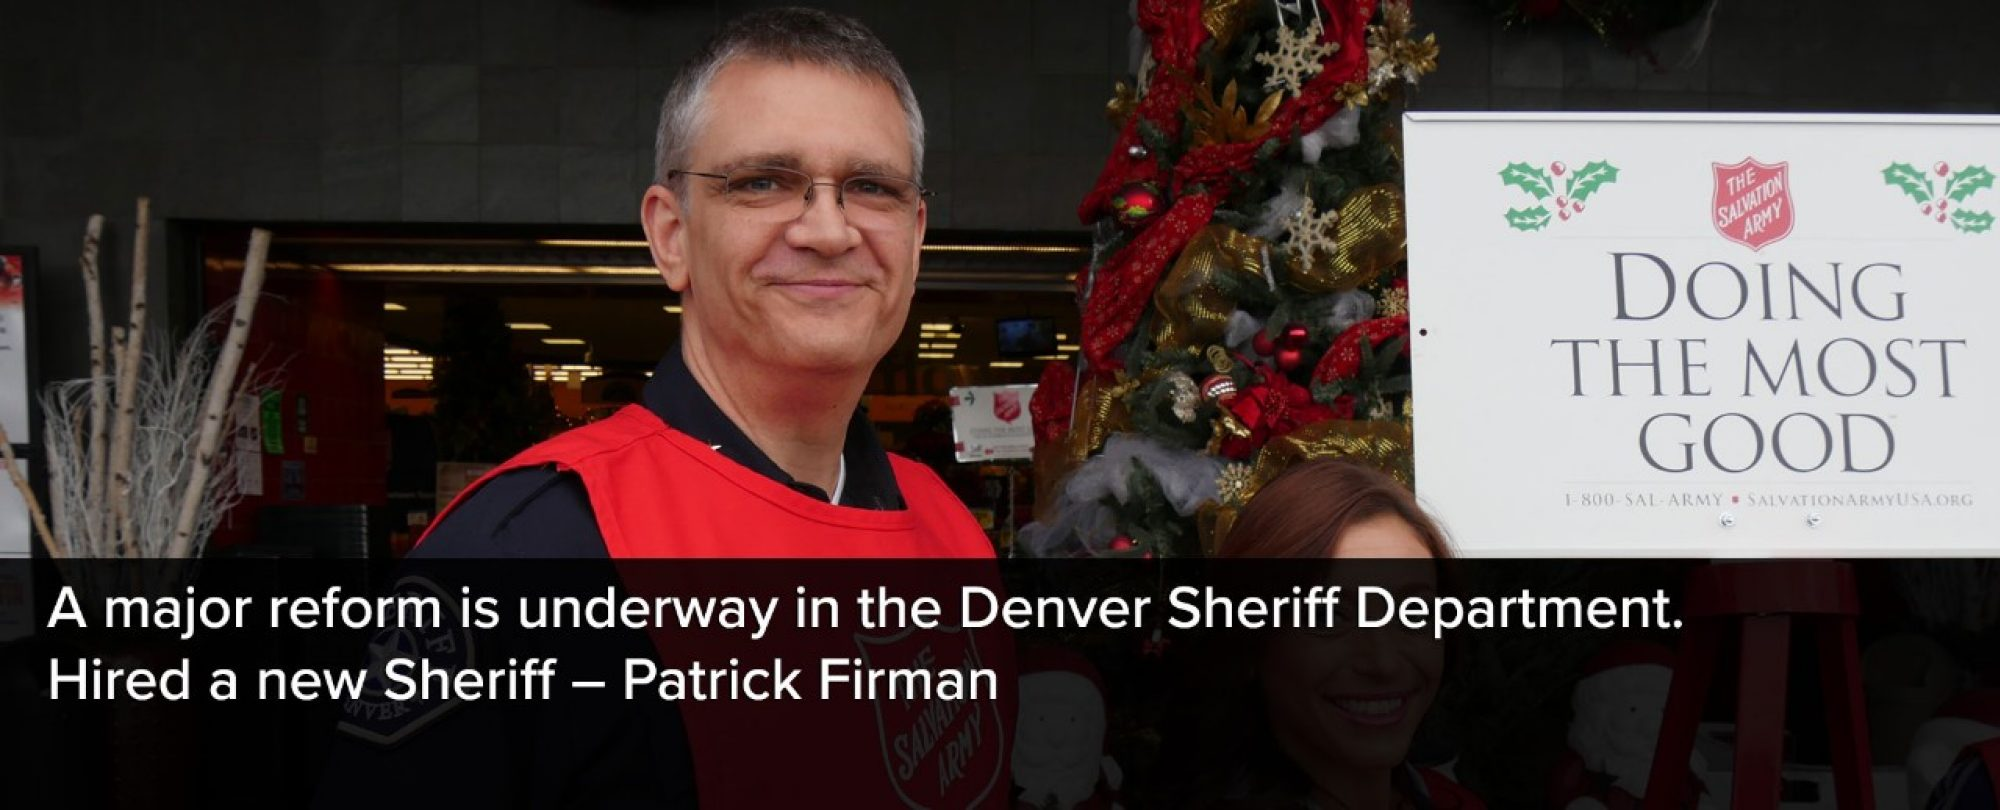 Photo of new Denver Sheriff, Patrick Firman volunteering in the community over the holidays. A major reform is underway in the Denver Sheriff Department including the hiring of Sheriff Patrick Firman.